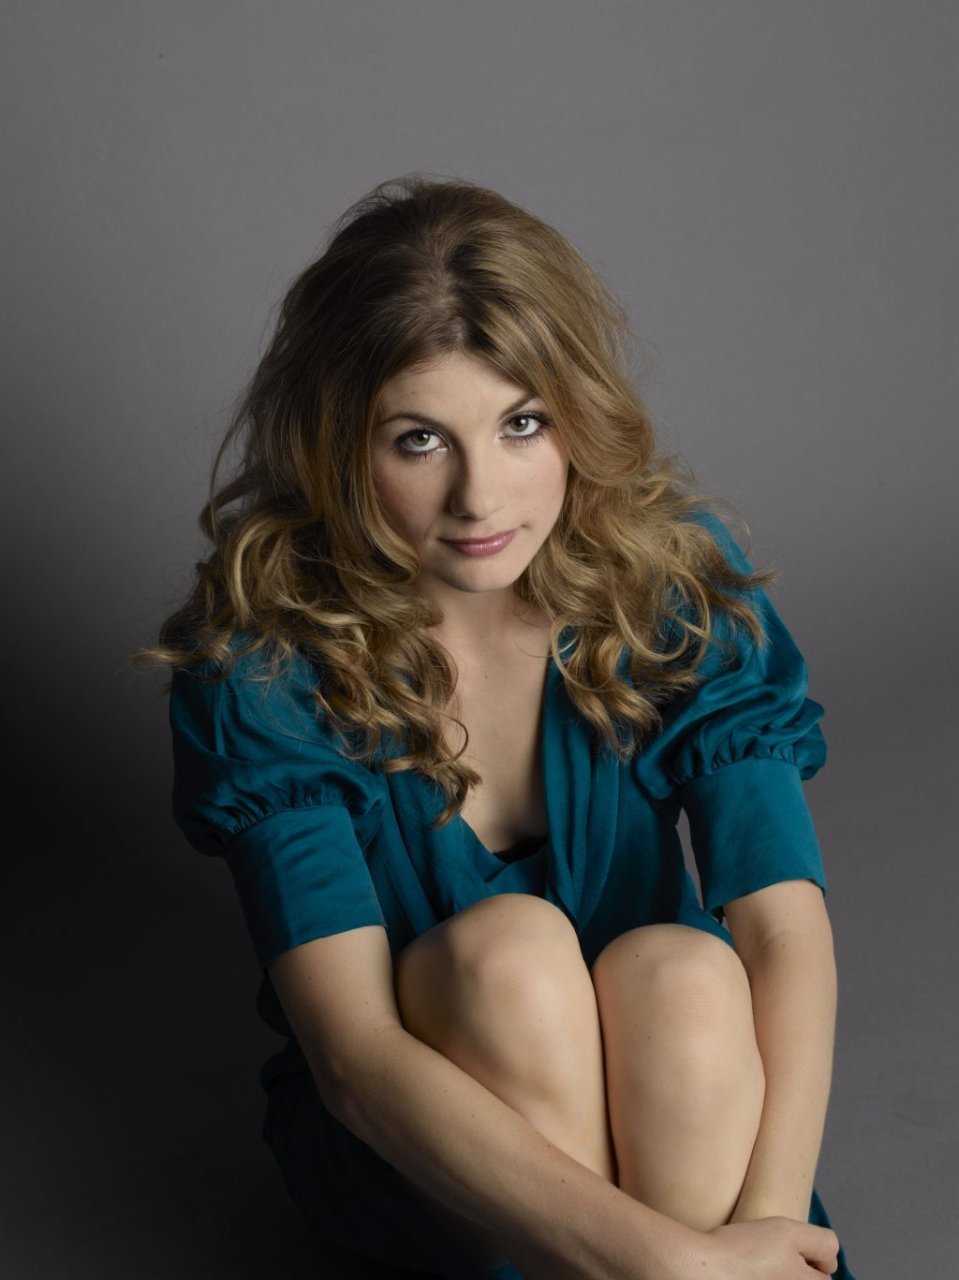 Jodie Whittaker Nude Photos and Videos | #TheFappening